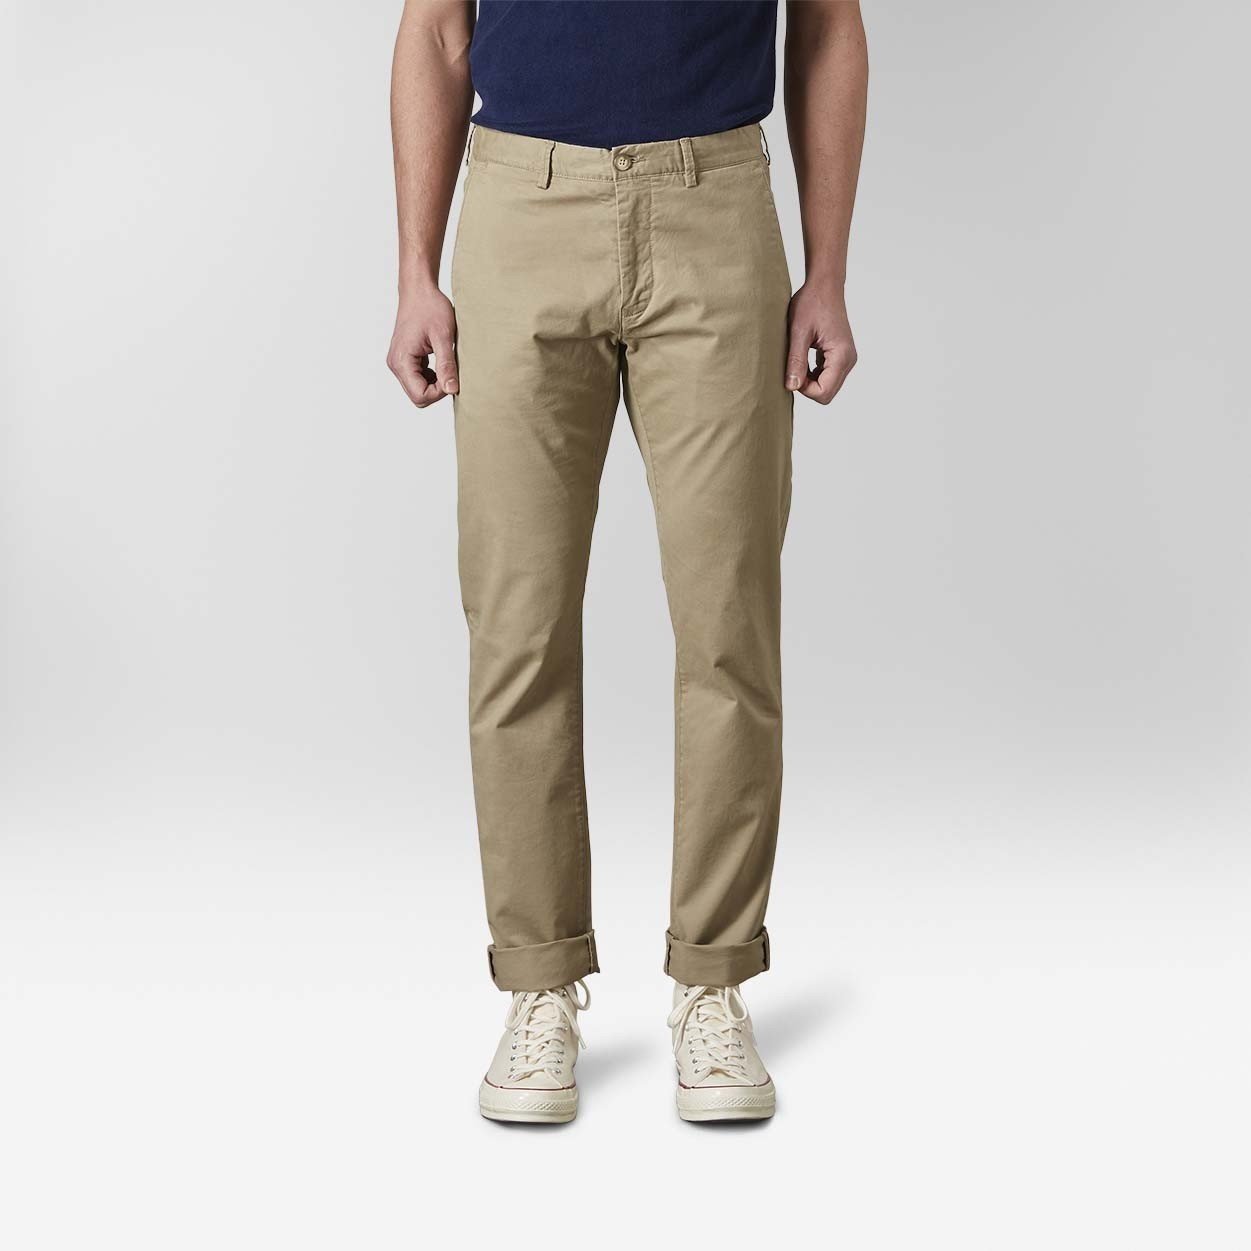 Bowery Chinos Beige 2 | East West | Brothers.se